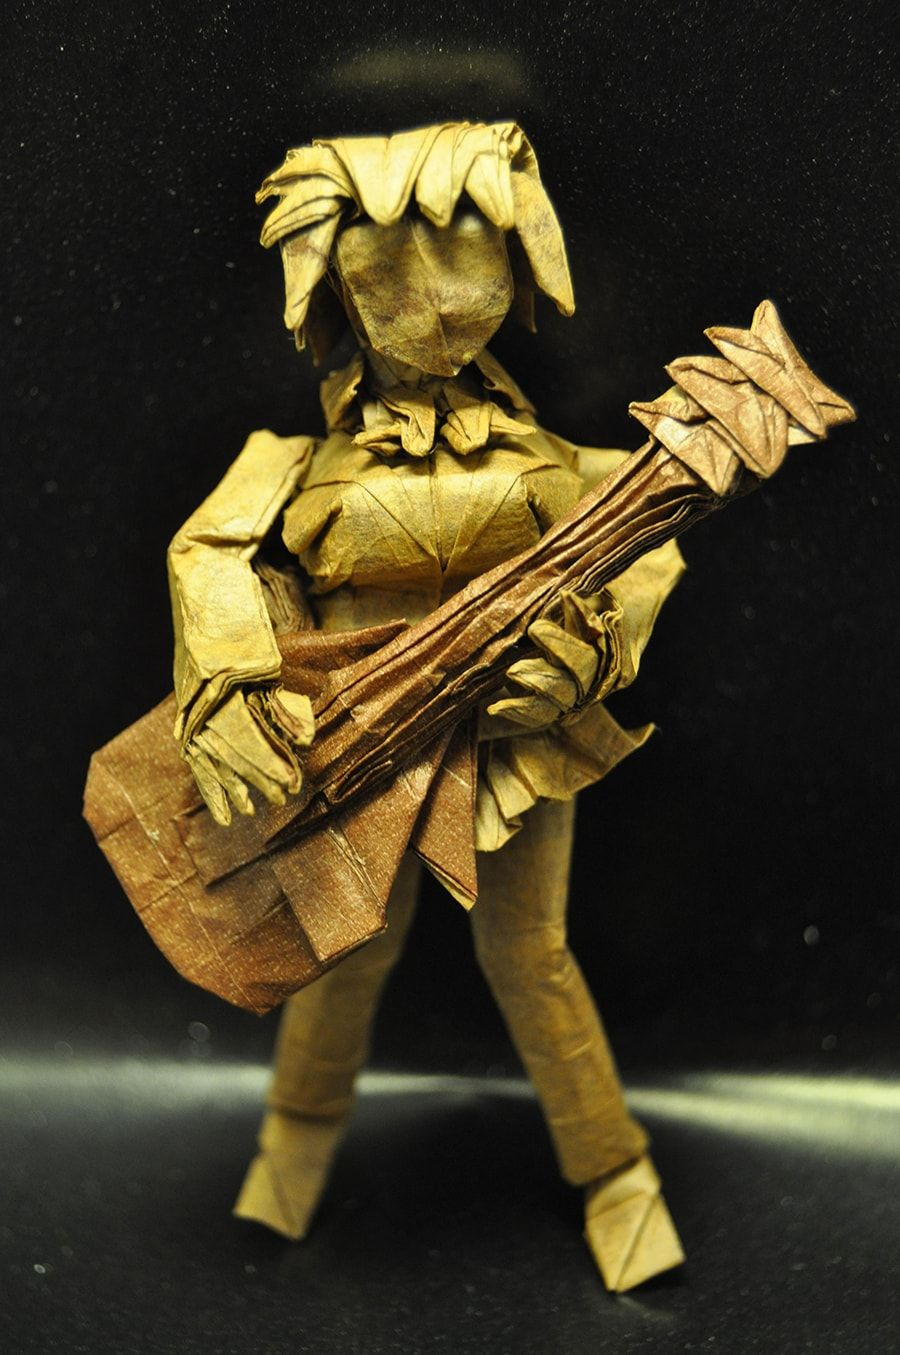 25 Incredible Japanese Anime Characters in Origami Form in